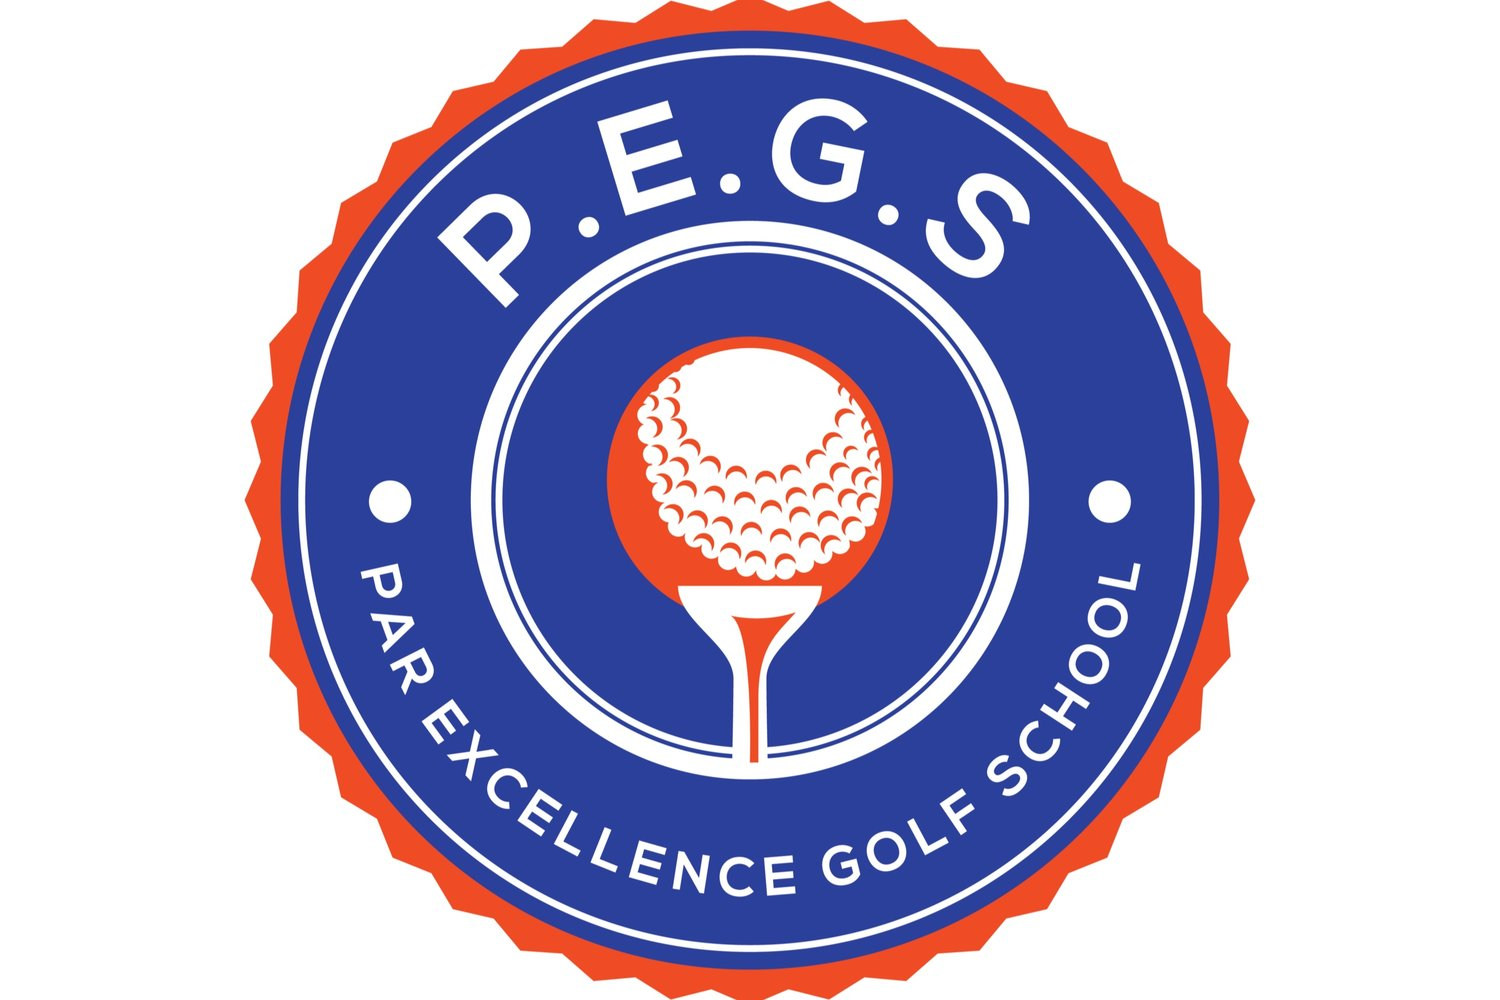 Inclusive PGA Golf Instruction - Par Excellence Golf School - Augusta Ranch Golf Club - Mesa, Arizona